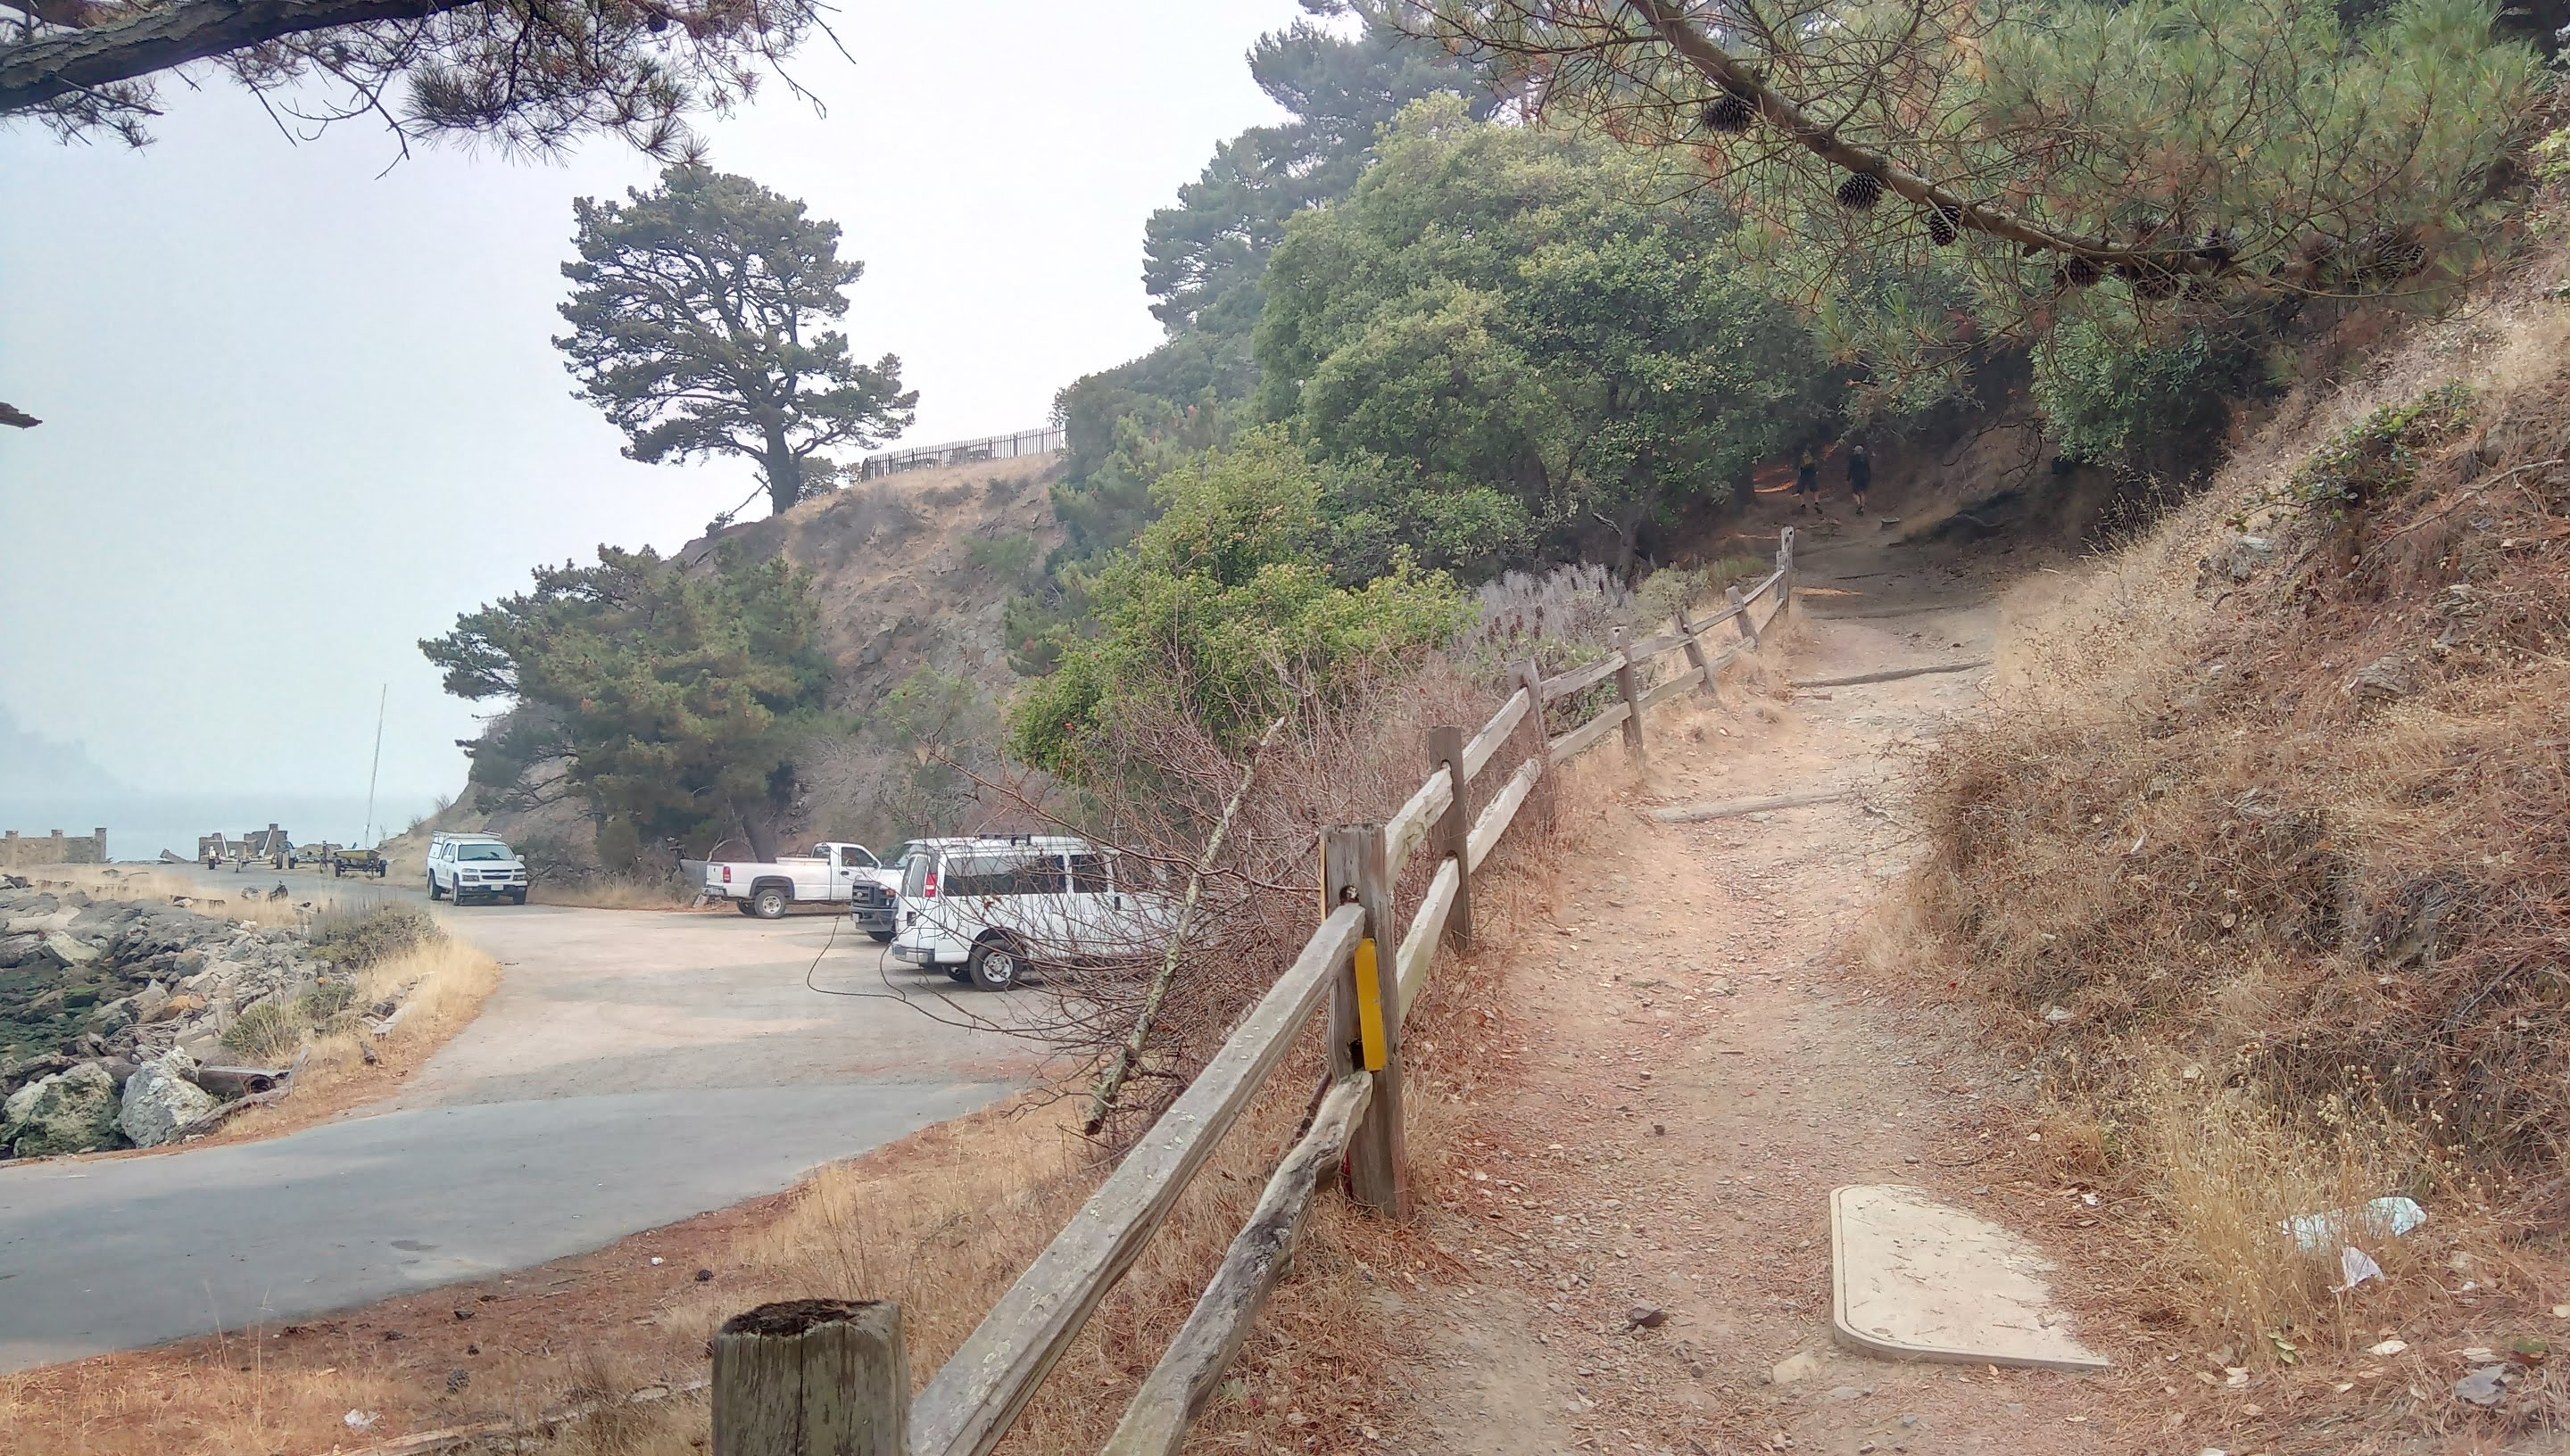 The trail starts to climb right from the visitor center